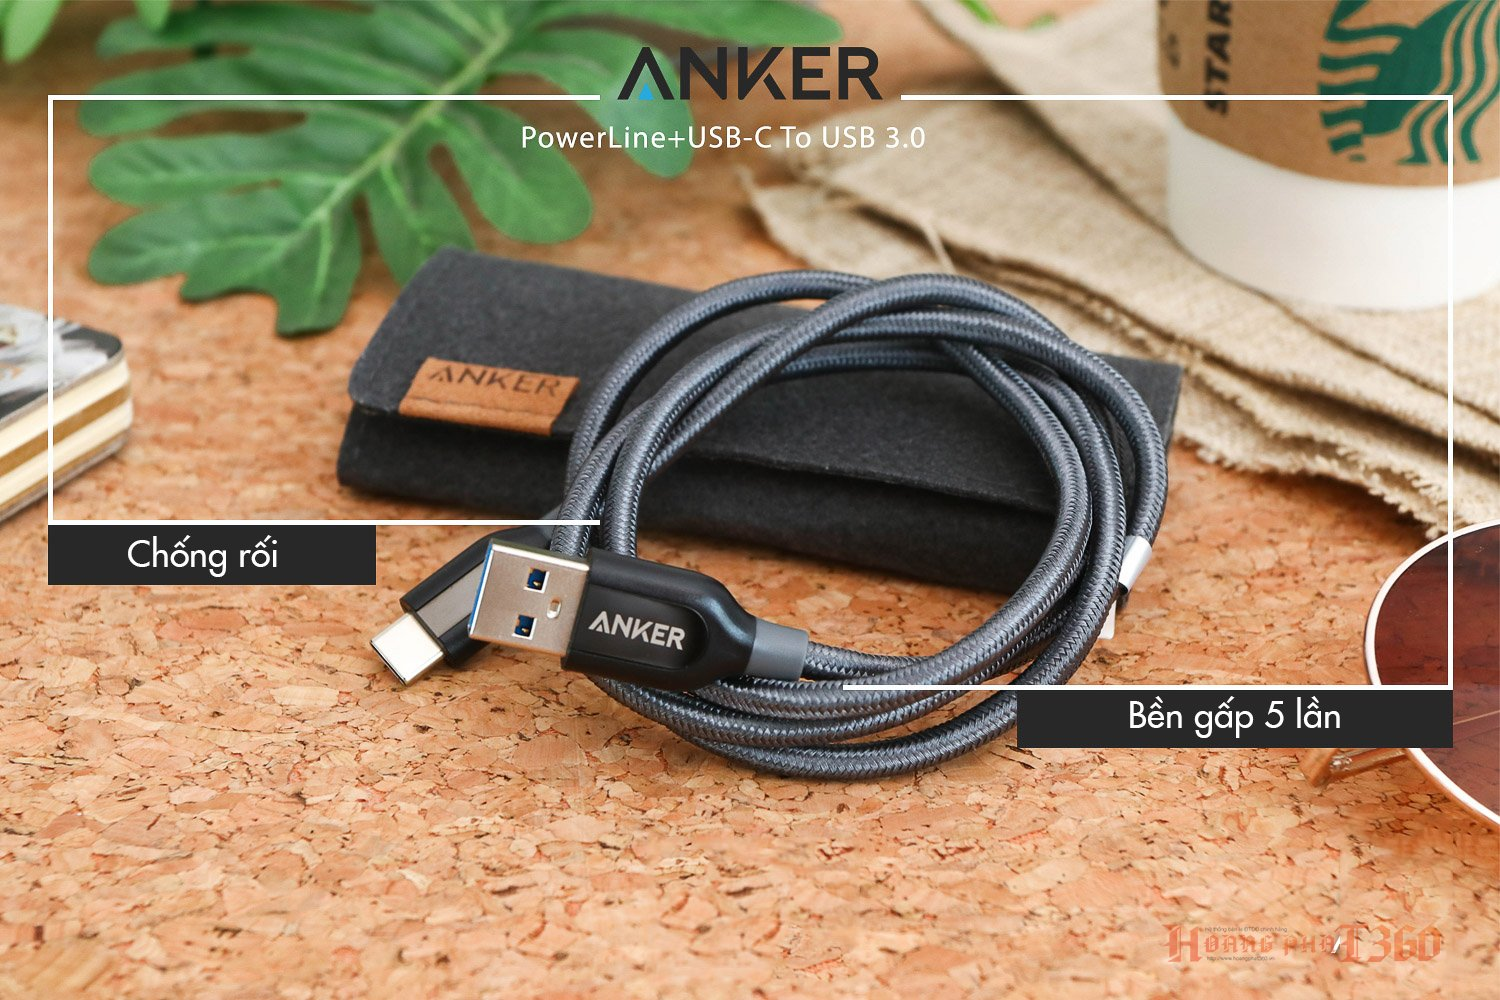 Cáp Anker PowerLine USB 3.0 ra USB-C